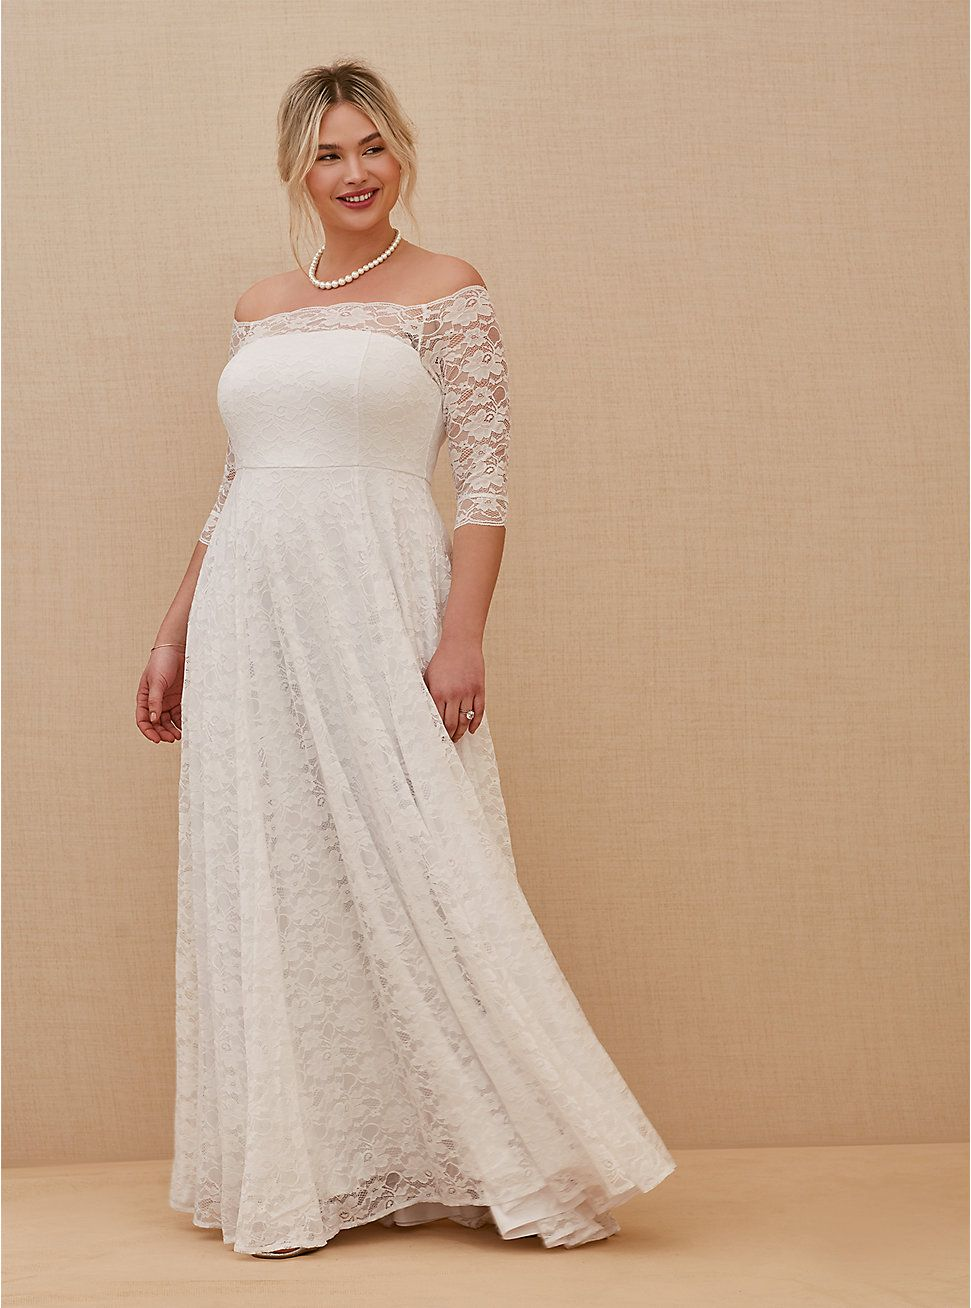 White Lace Off Shoulder ALine Wedding Dress in 2020 A